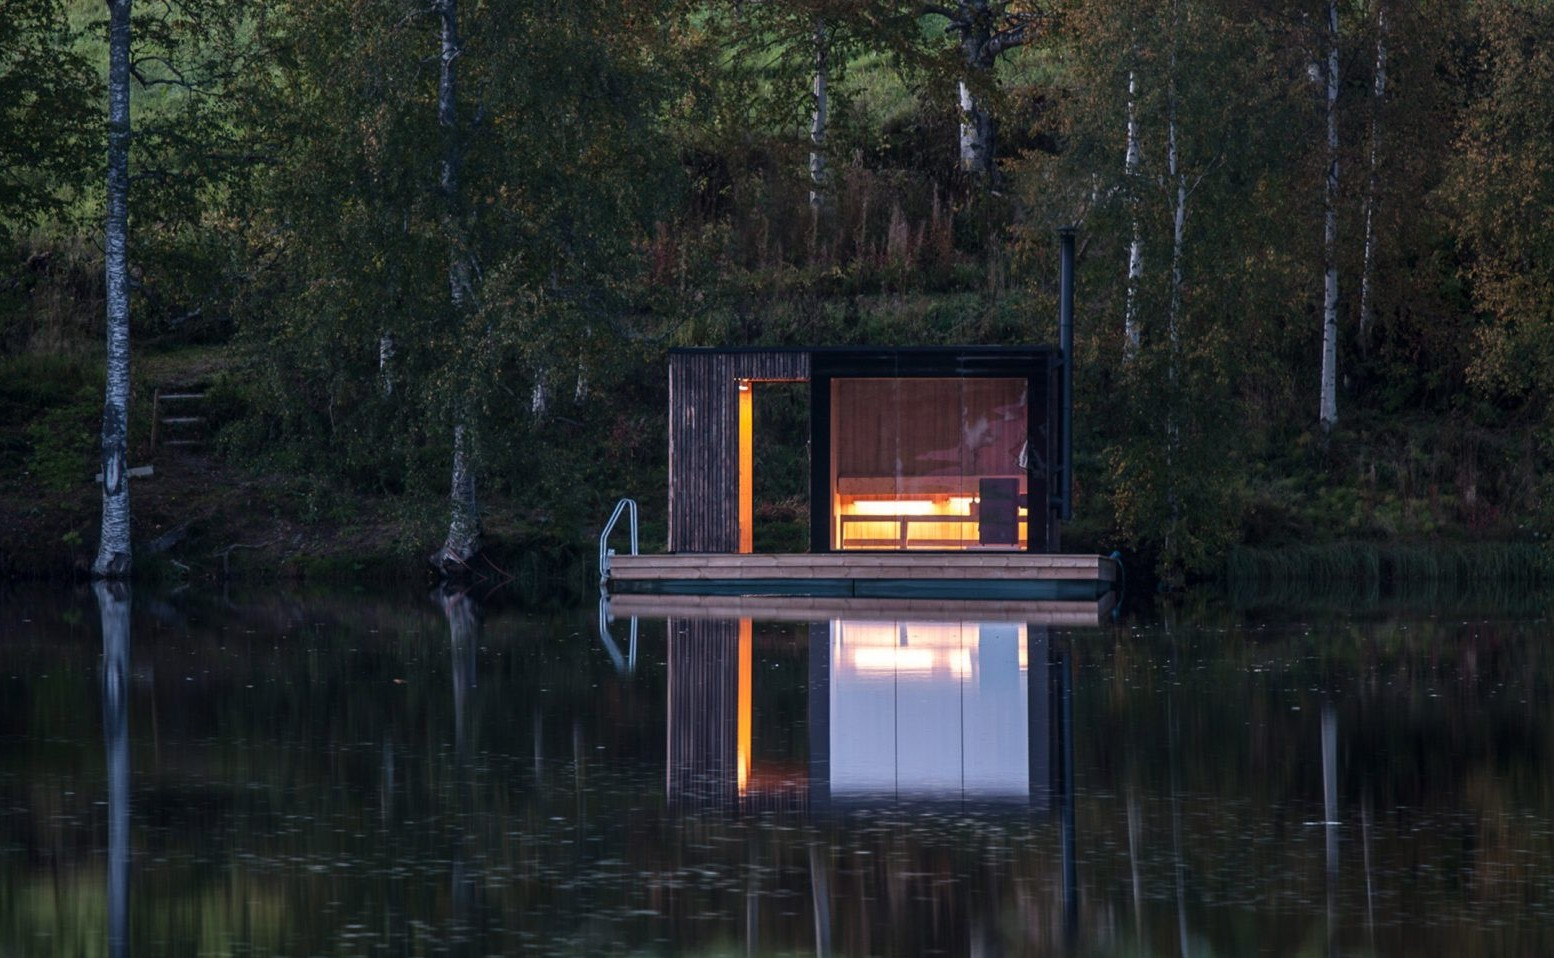 floating-sauna-small-architecture-workshop-marchesi-masperi-panella-bed-breakfast-sweden-nordic-architecture-_dezeen_2364_col_16-1704x959